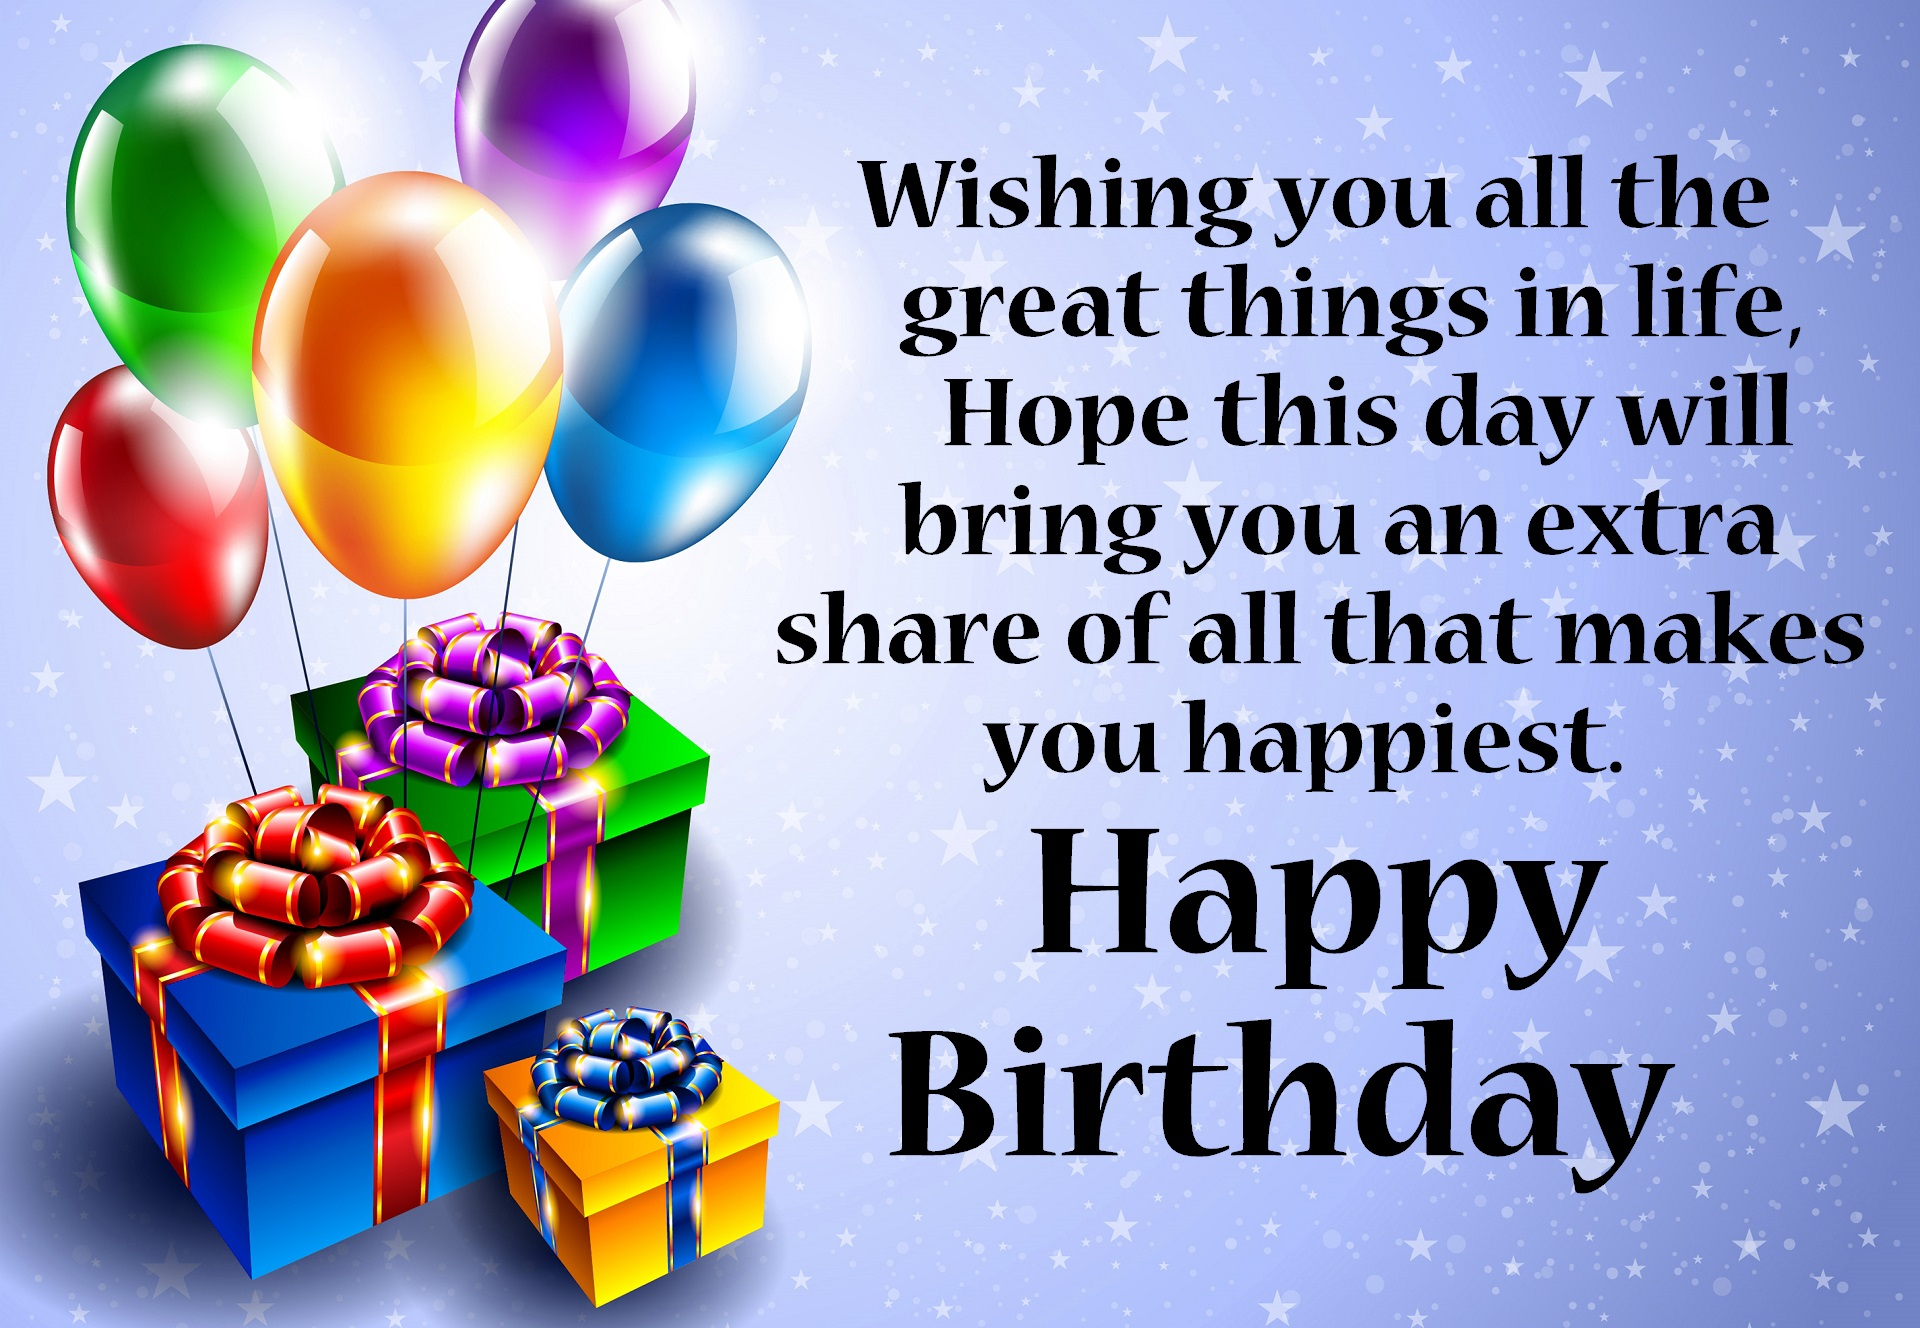 Happy Birthday Wishes 2018 Images Birthday Greetings Messages